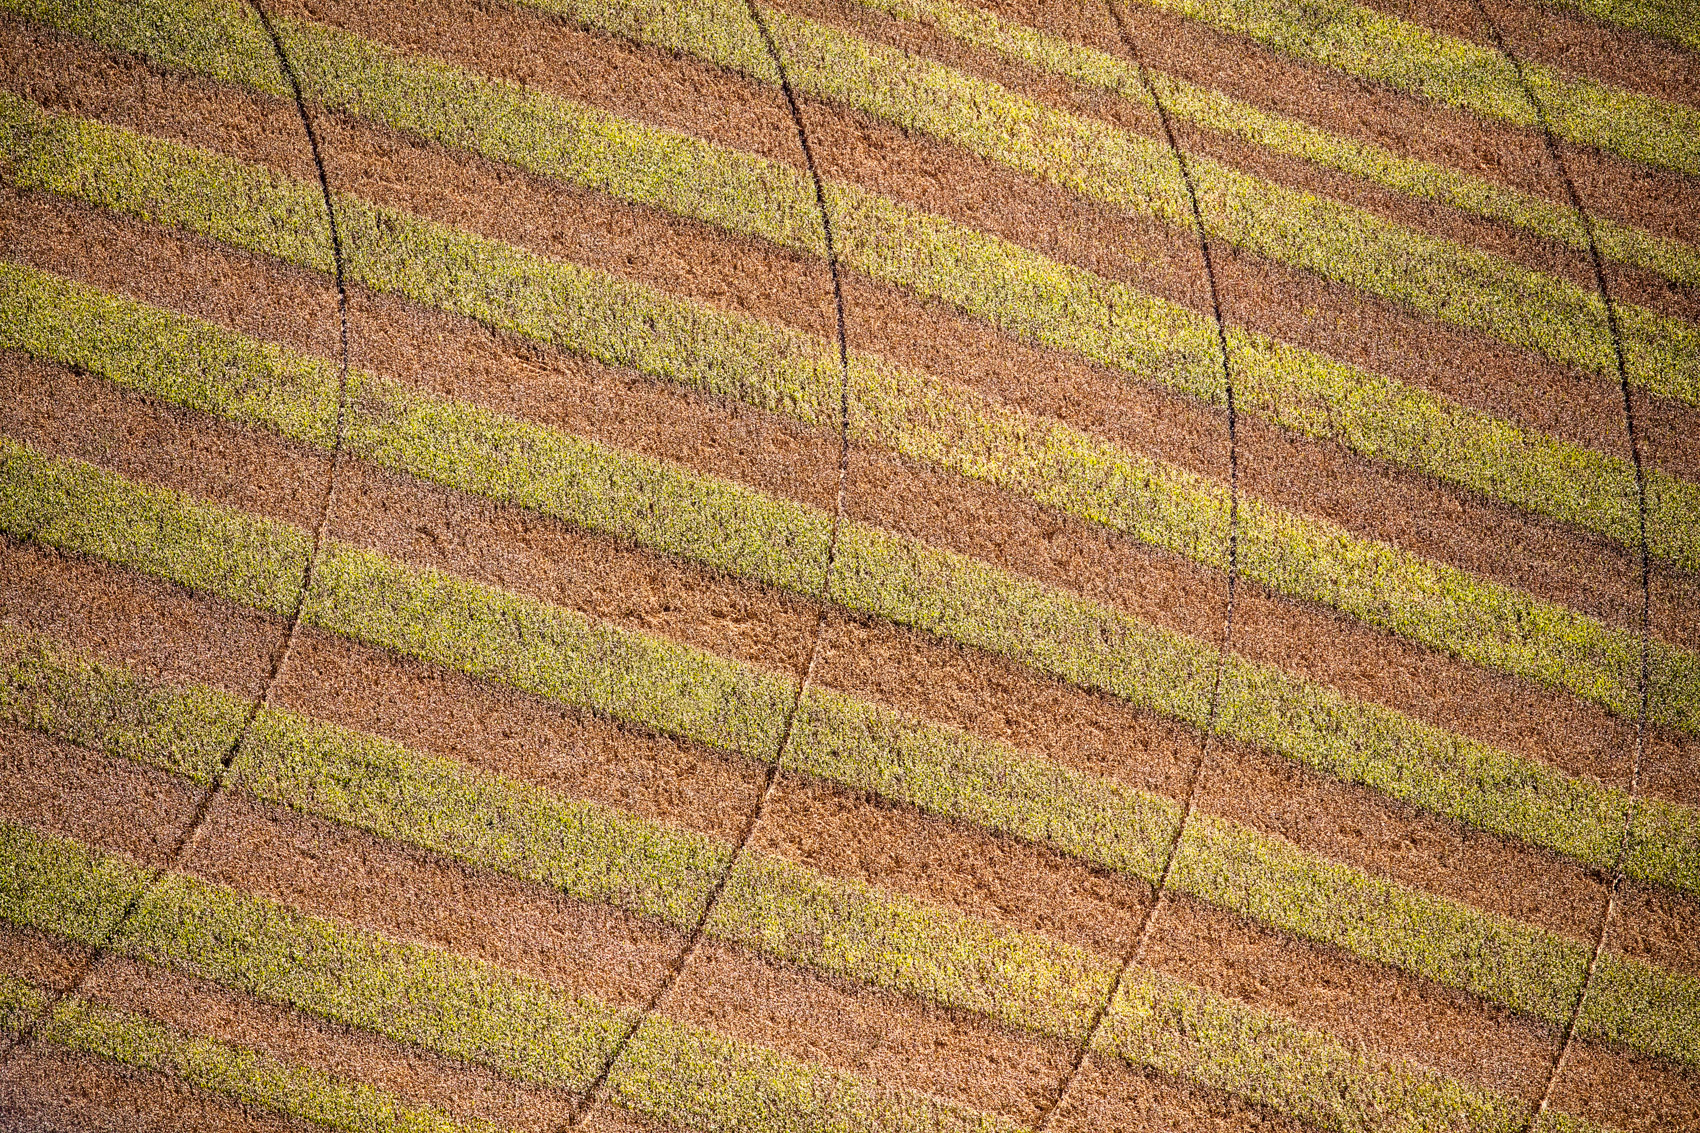 Pivot Tracks, Brownstown, IN 2016 (160911-0420)